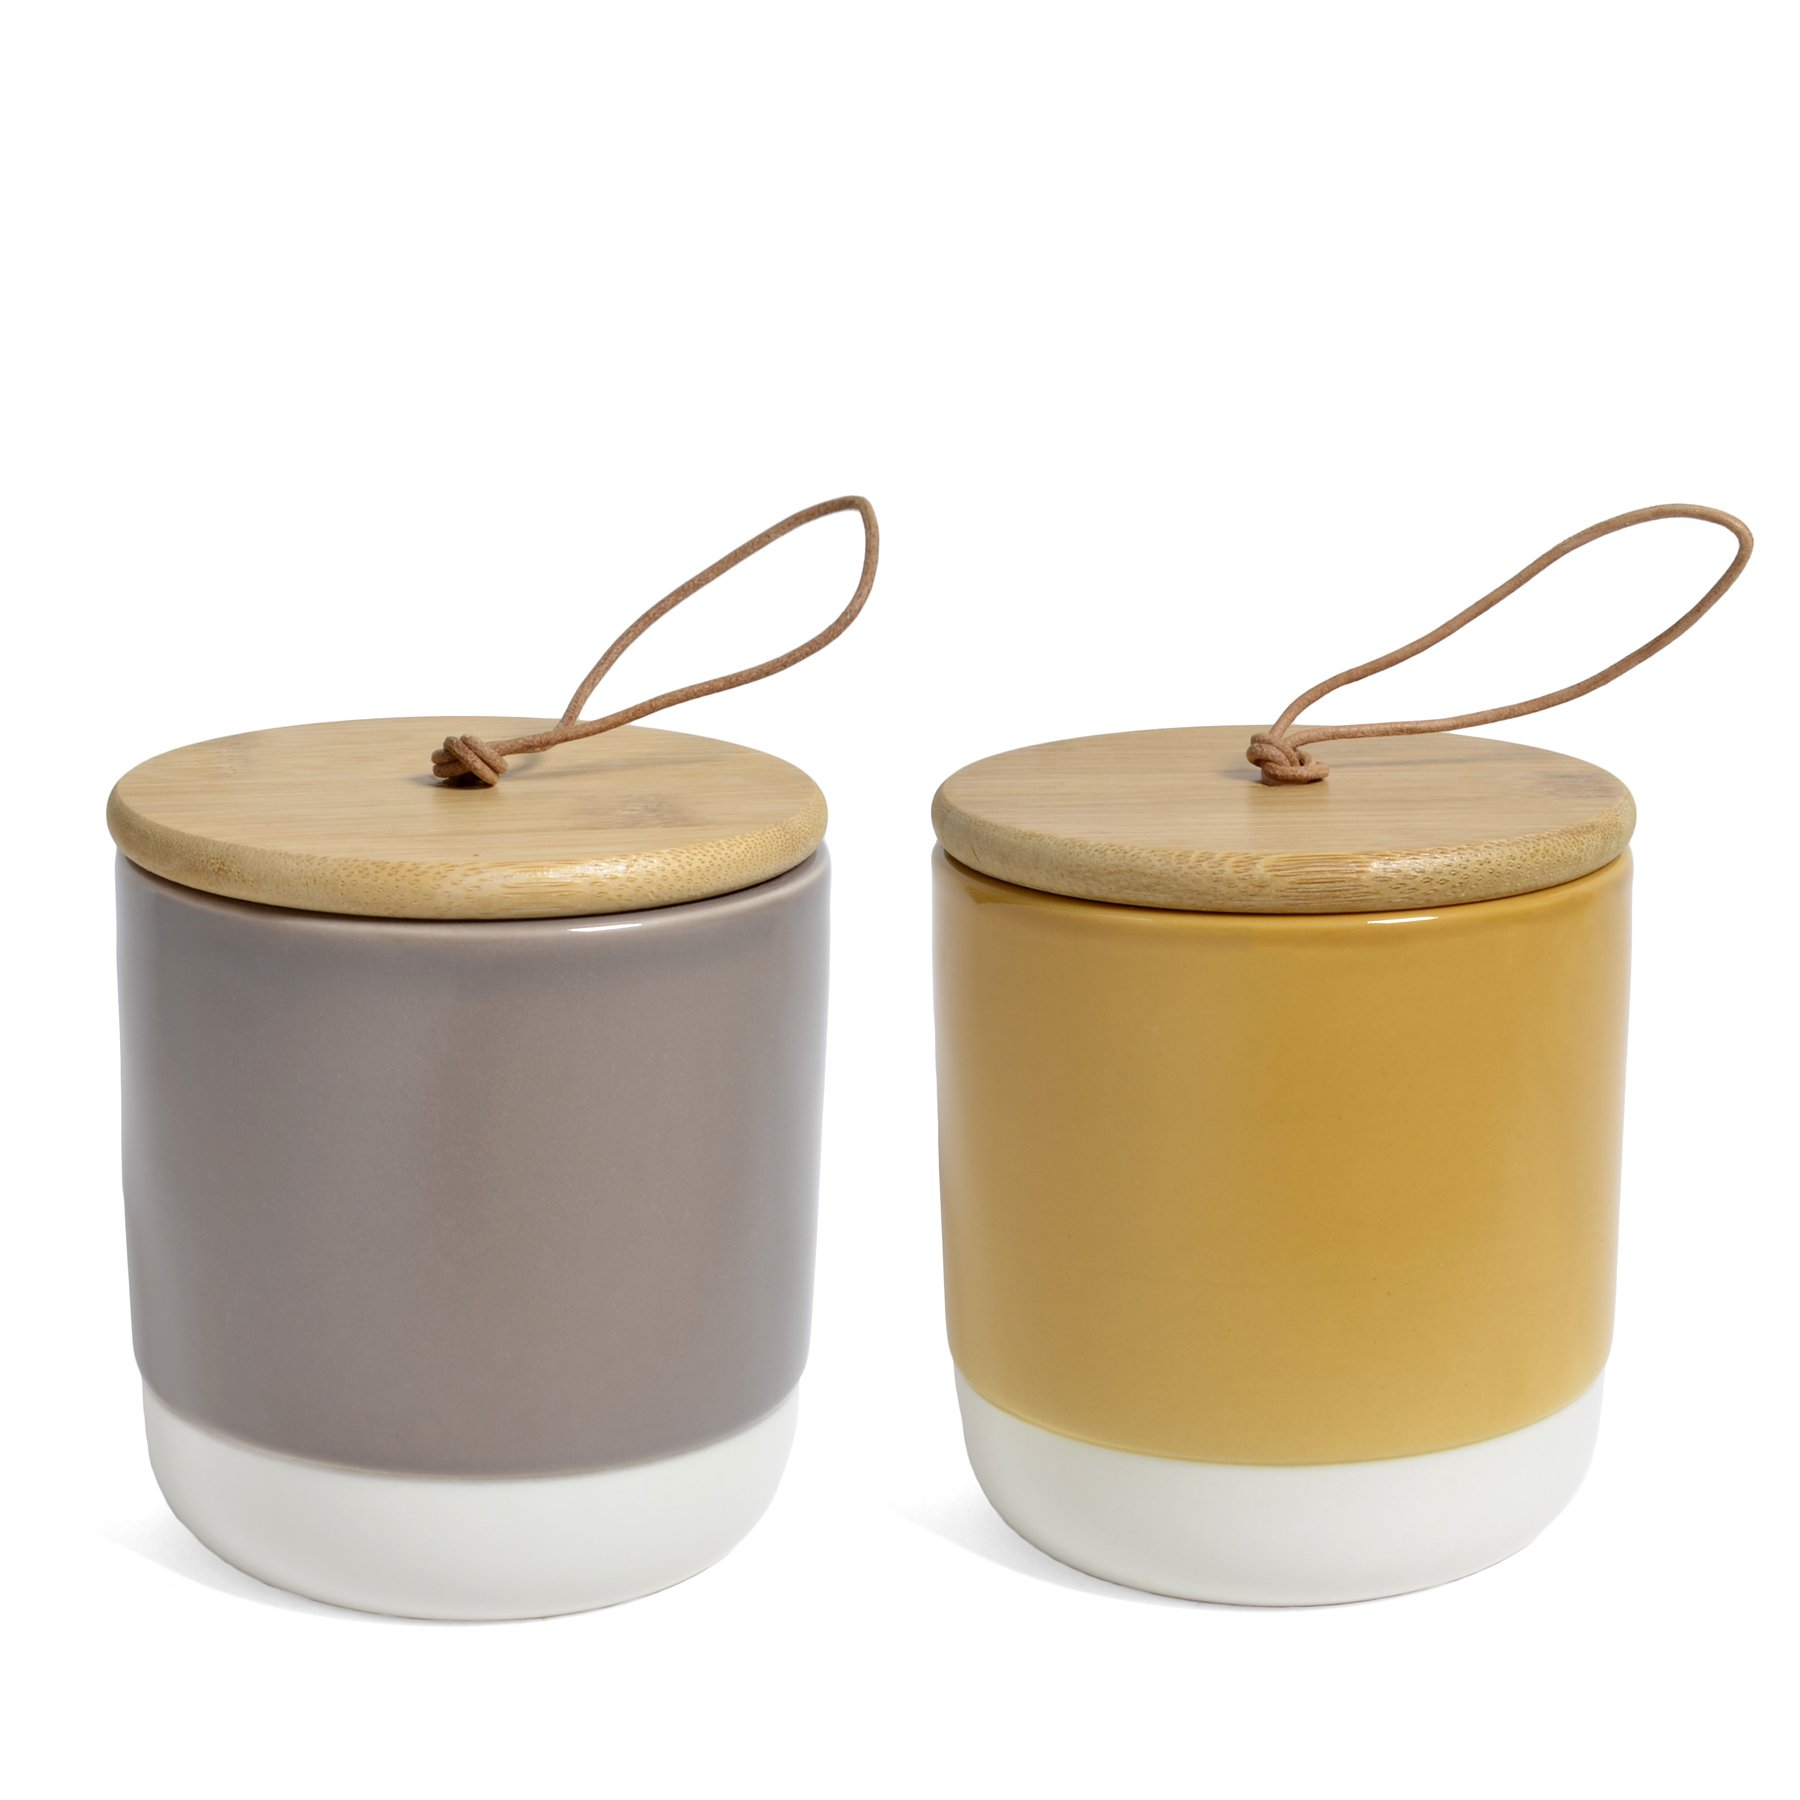 Bloomingville Stoneware Jars with Acacia Wood Lids, Multicolor, Set of 2